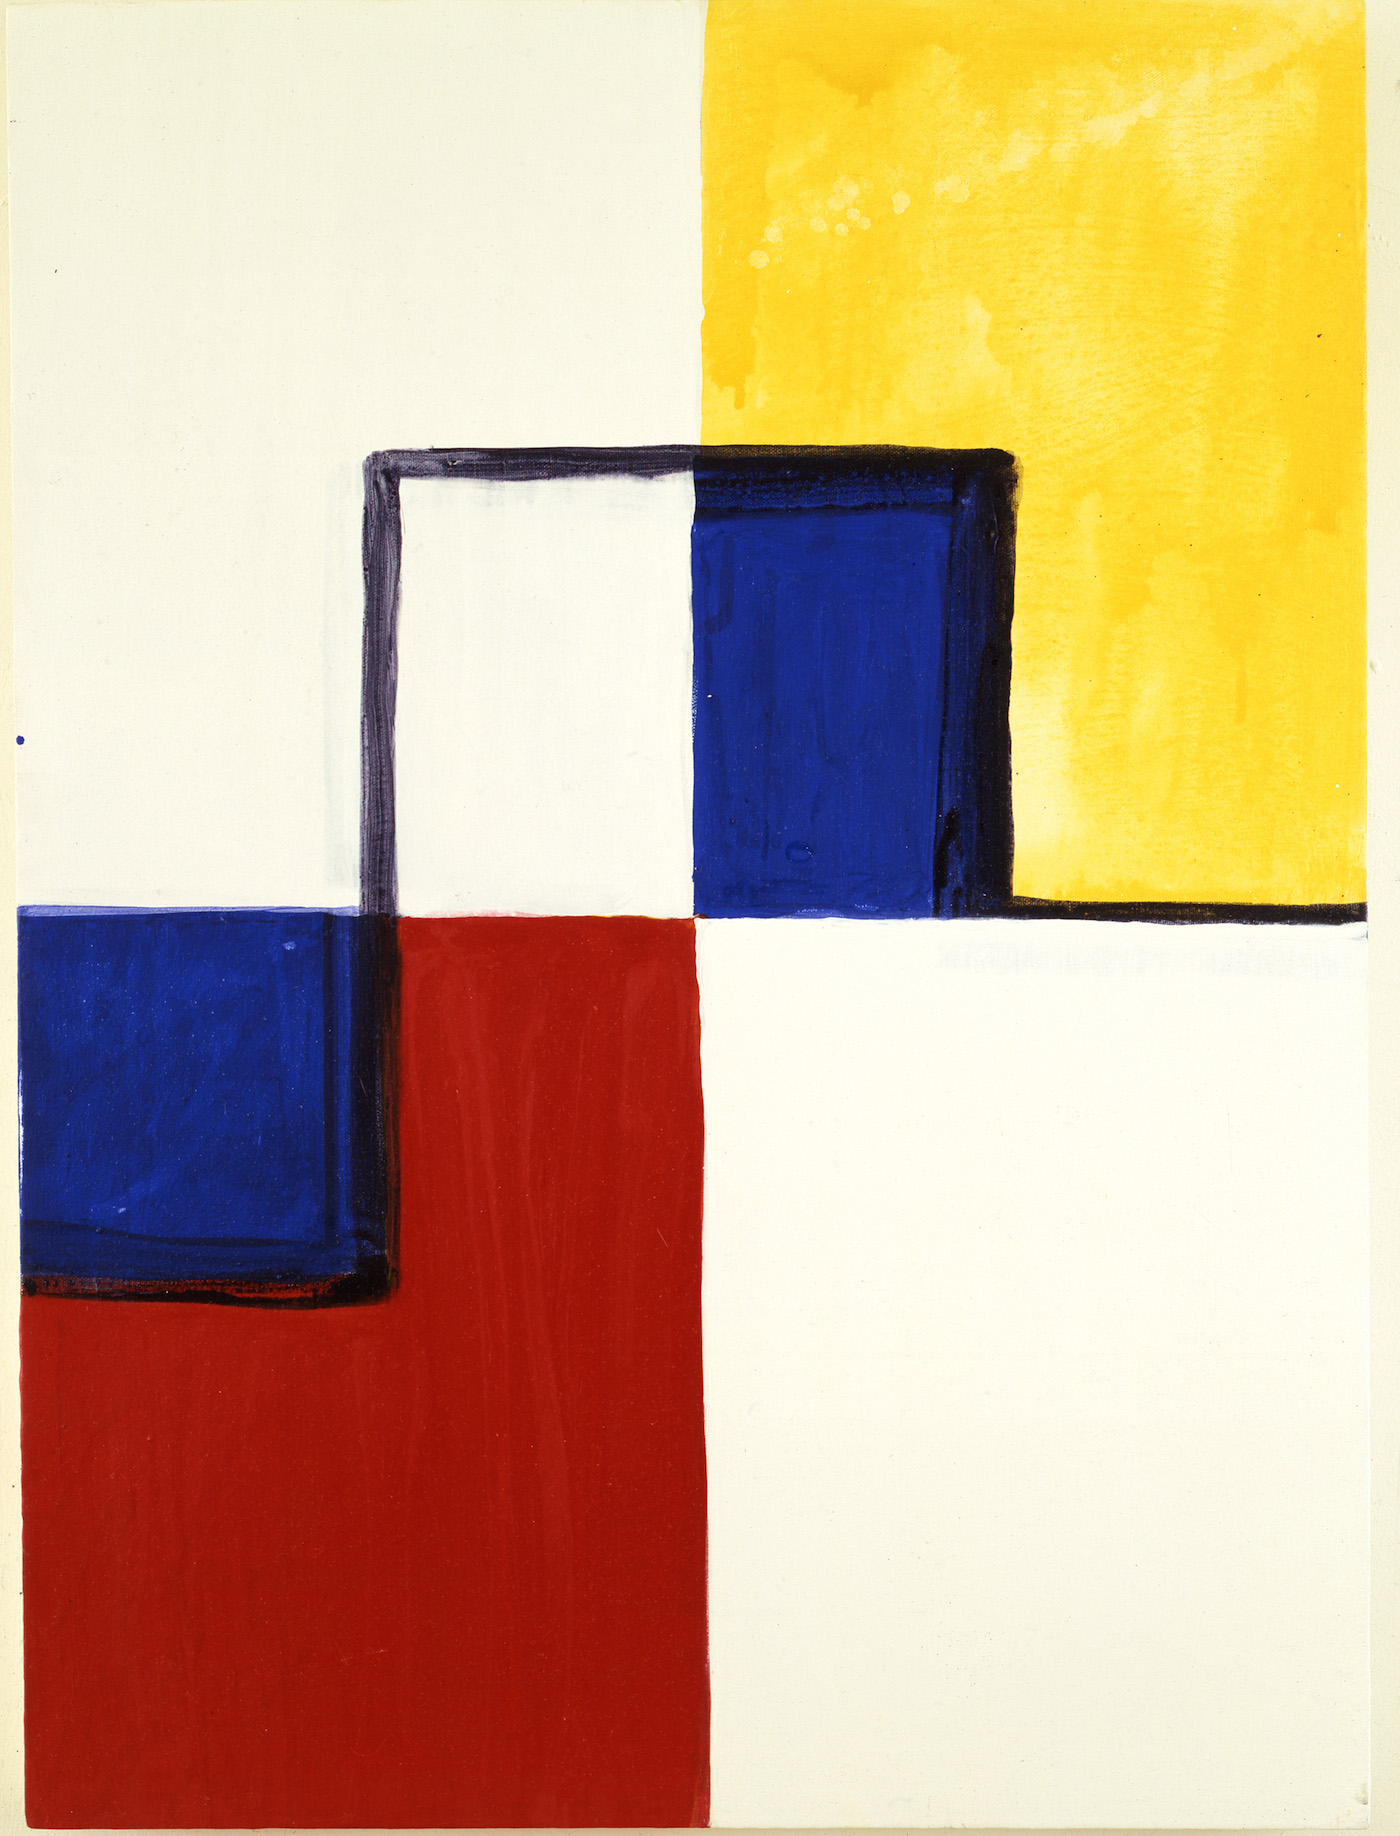 """Mary Heilmann, """"Little Mondrian"""" (1985), acrylic and watercolor on canvas (©Mary Heilmann, photo by Pat Hearn Gallery; courtesy of the artist, 303 Gallery, New York, and Hauser & Wirth)"""